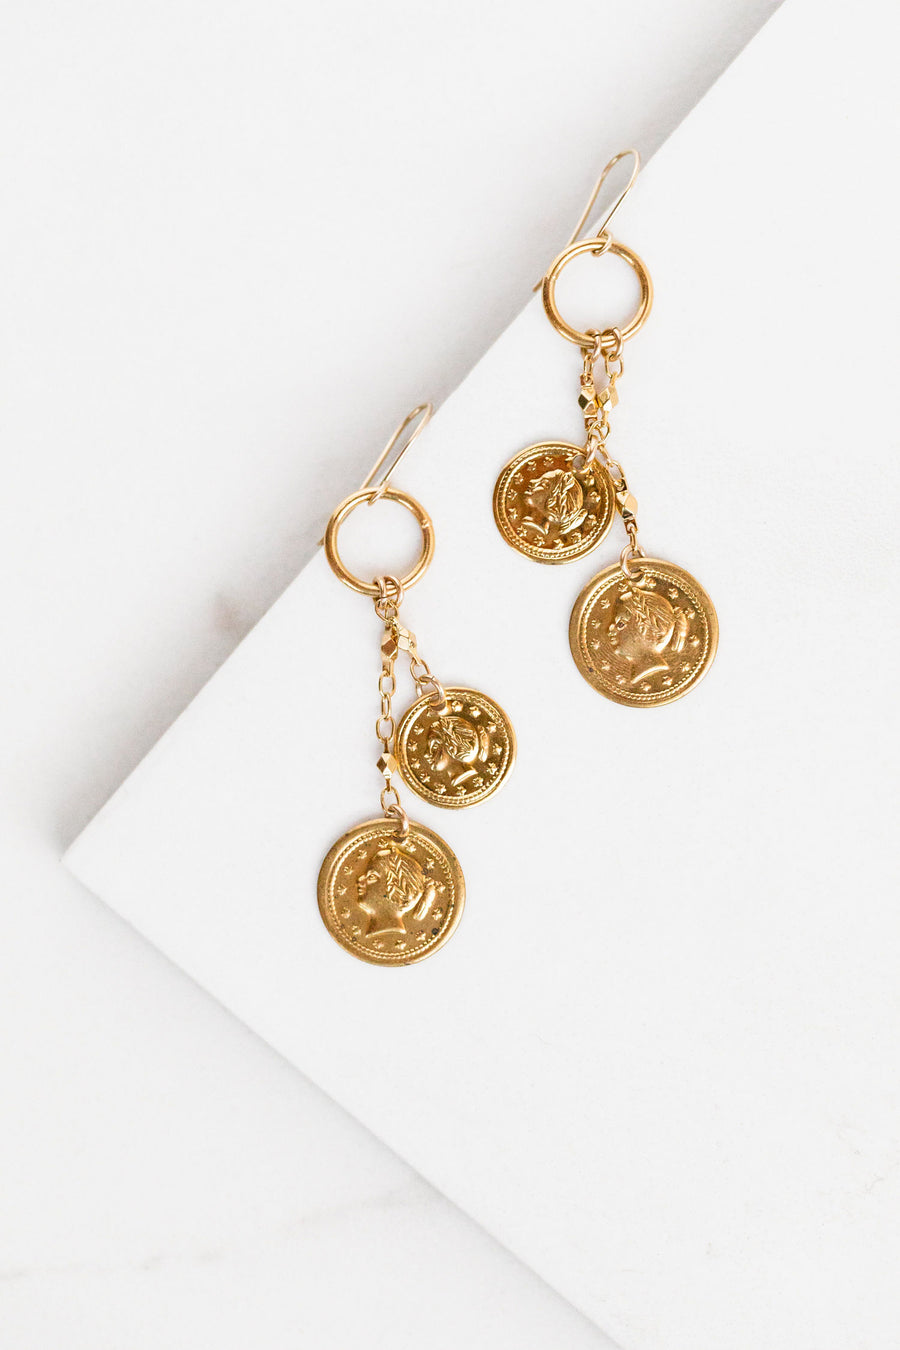 Find the perfect pair of earrings you're looking for from Charme Silkiner! These 14k Gold Hoop Earrings with Gold Coin Accents are seriously stunning. Perfect to dress or dress down any outfit the Chiraz Earrings are the perfect must have for everyone!